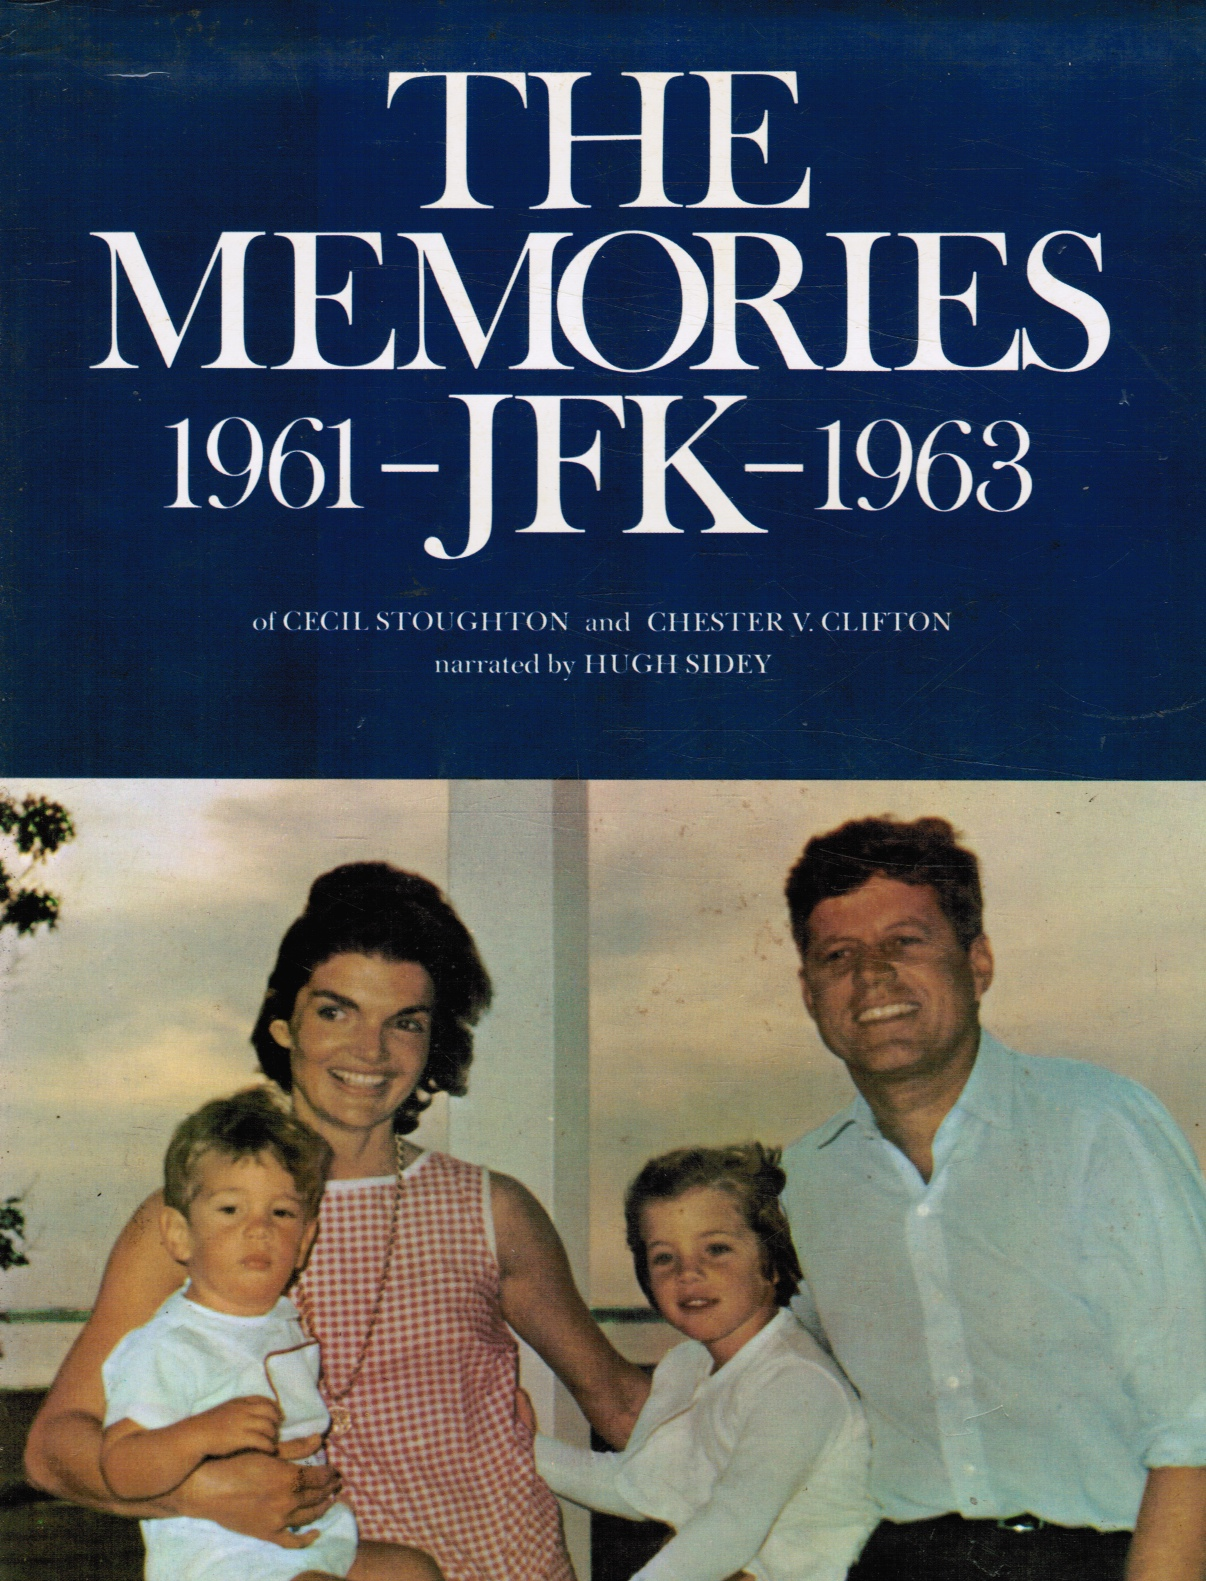 Image for The Memories - JFK, 1961-1963 - of Cecil Stoughton and Major General Chester V. Clifton